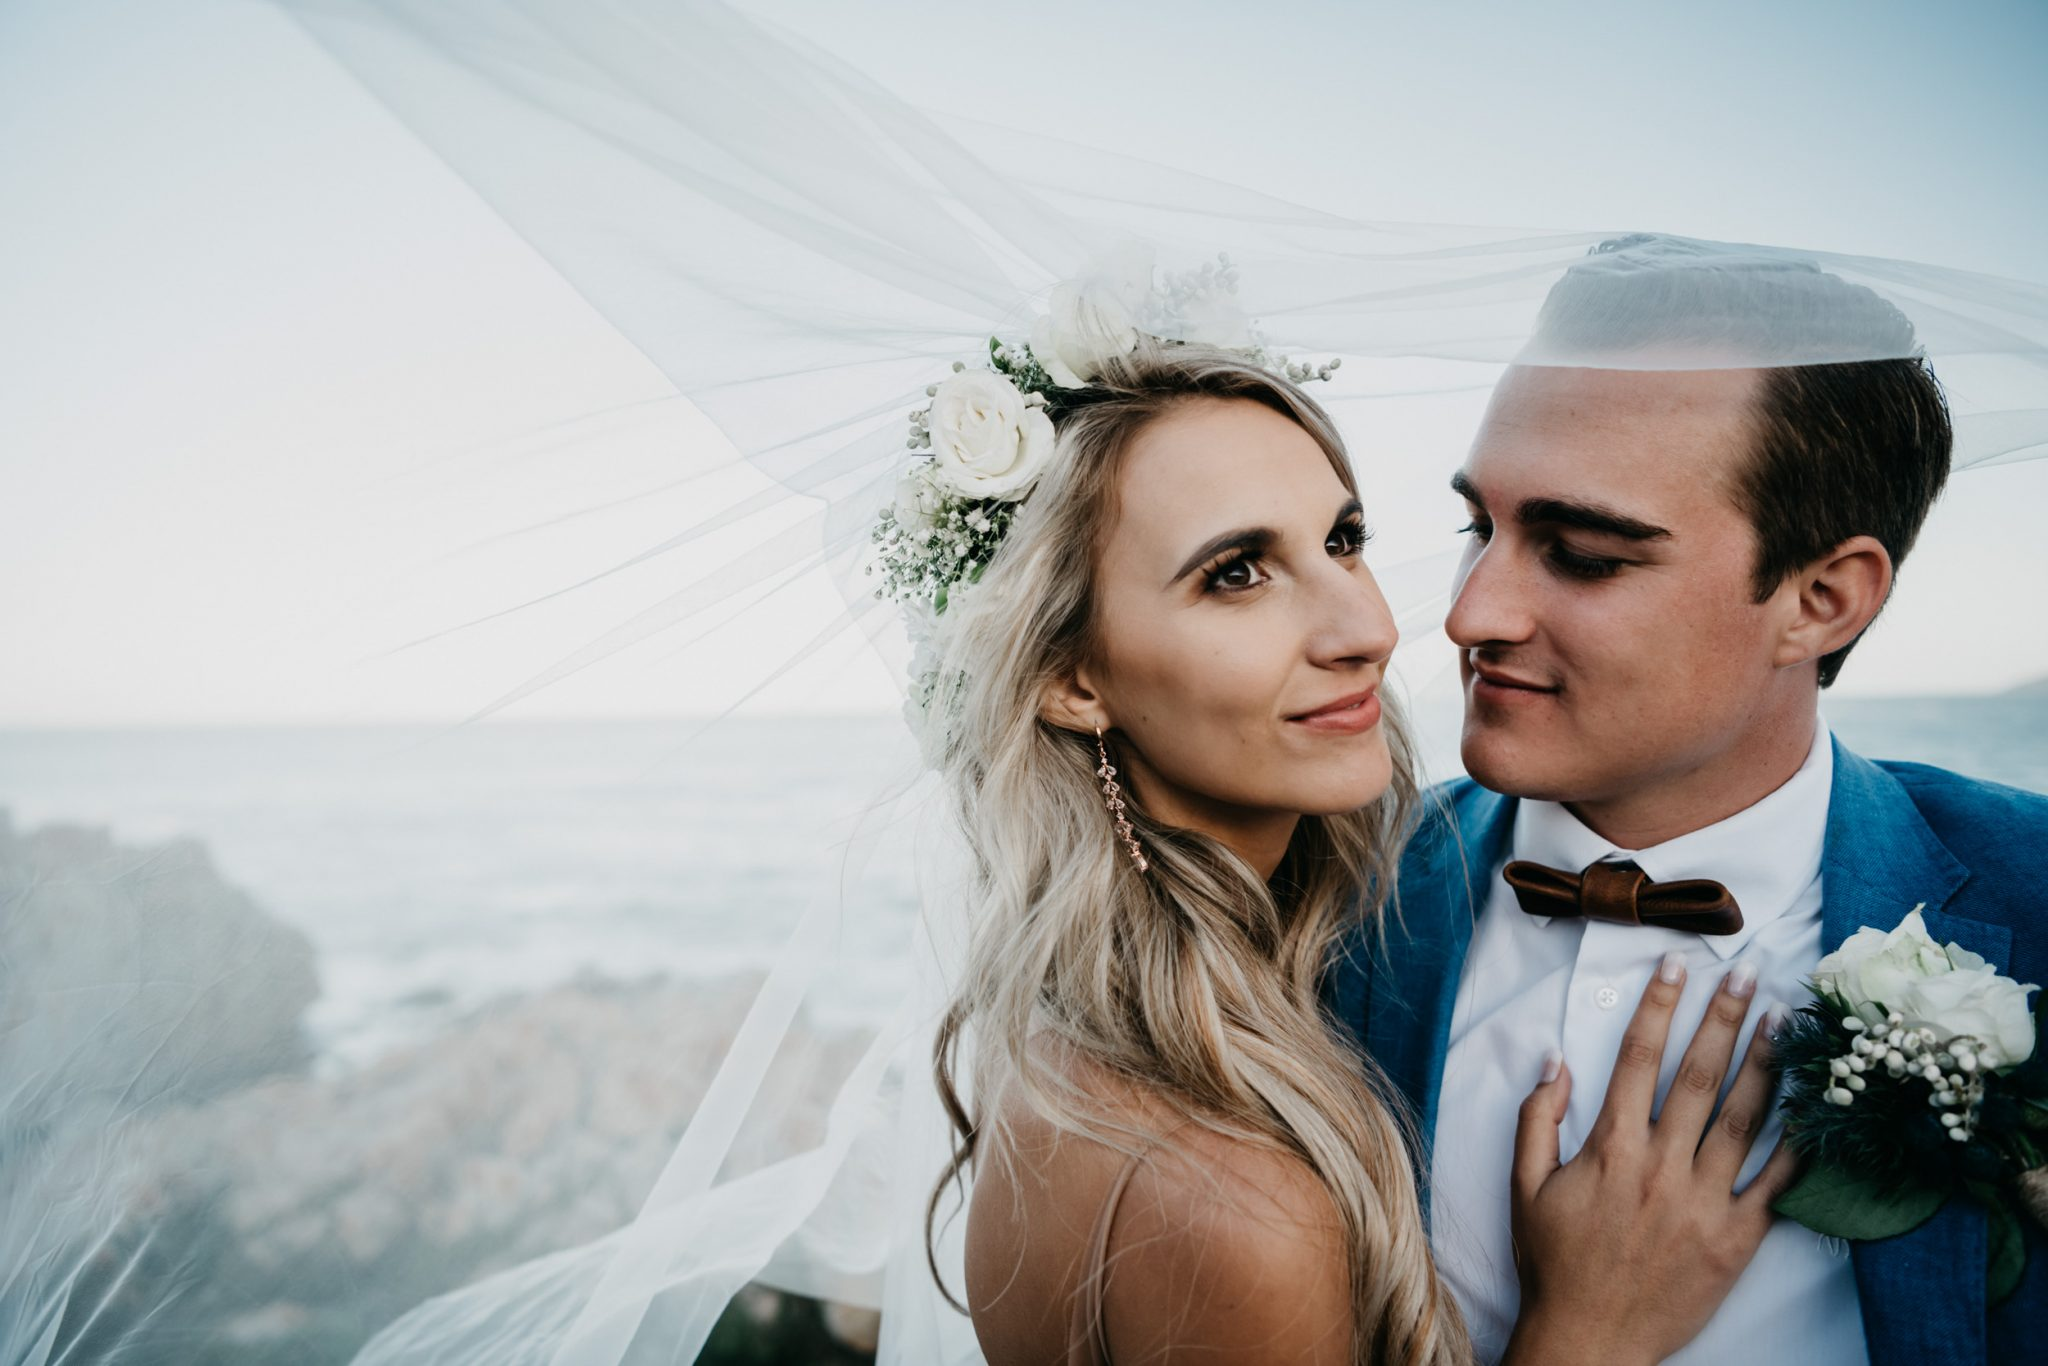 Melanie & Berno's beach wedding at Keurboomstrand, Plettenberg Bay.